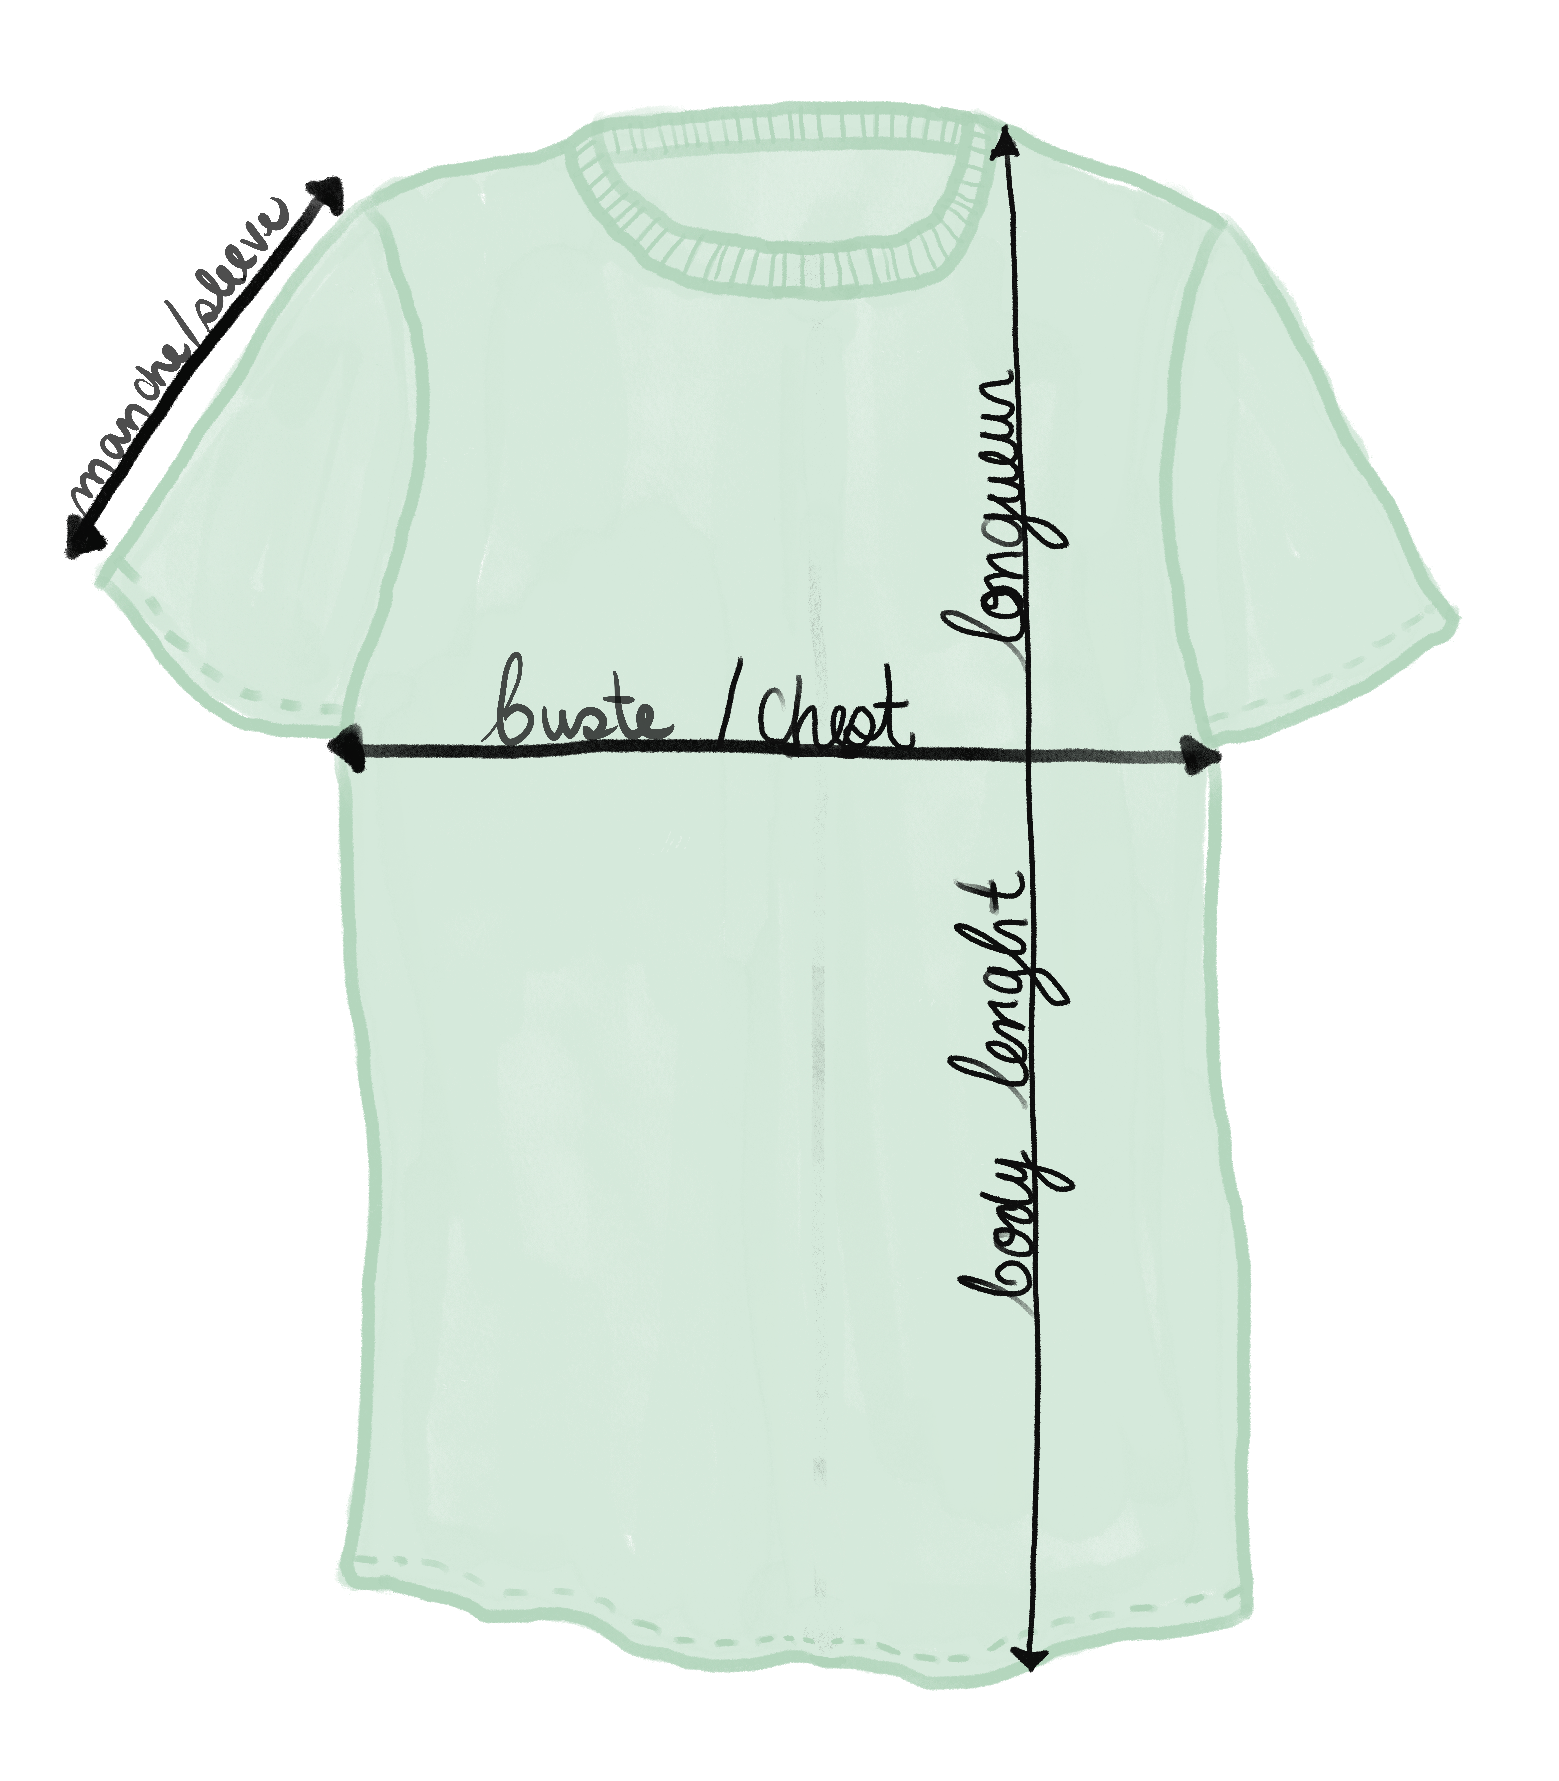 t-shirt size chart mimi & august